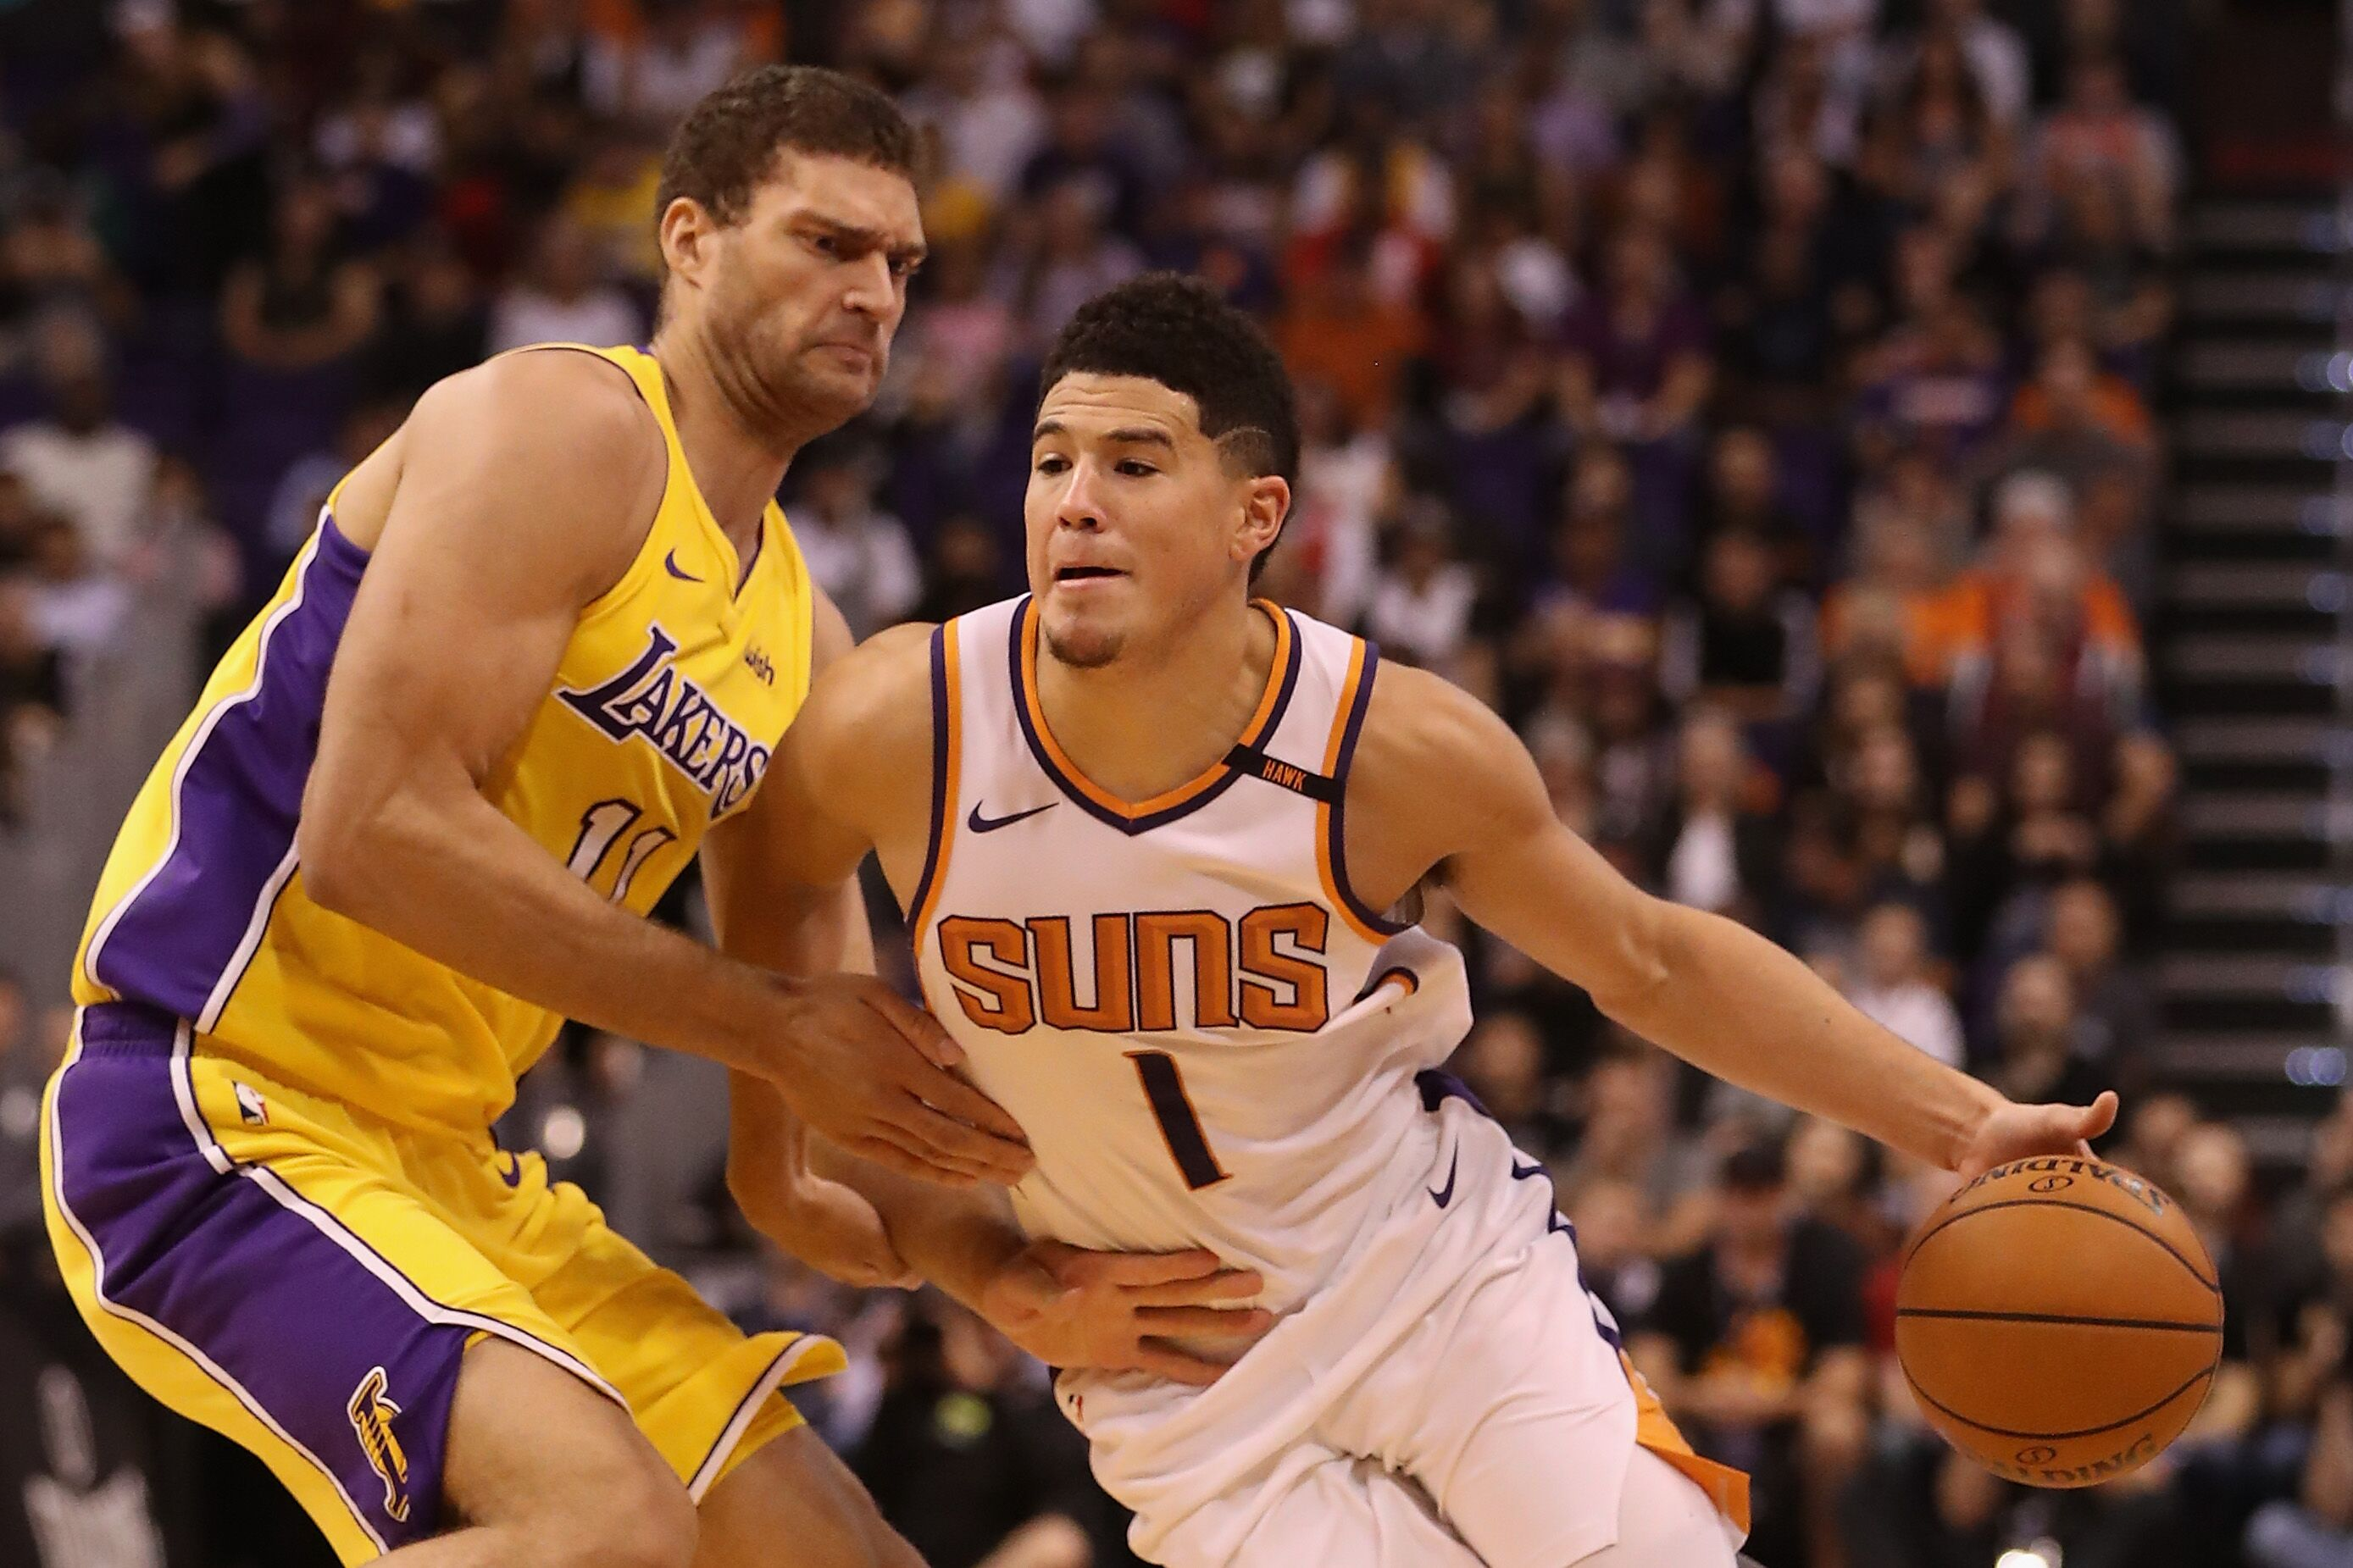 874627914-los-angeles-lakers-v-phoenix-suns.jpg